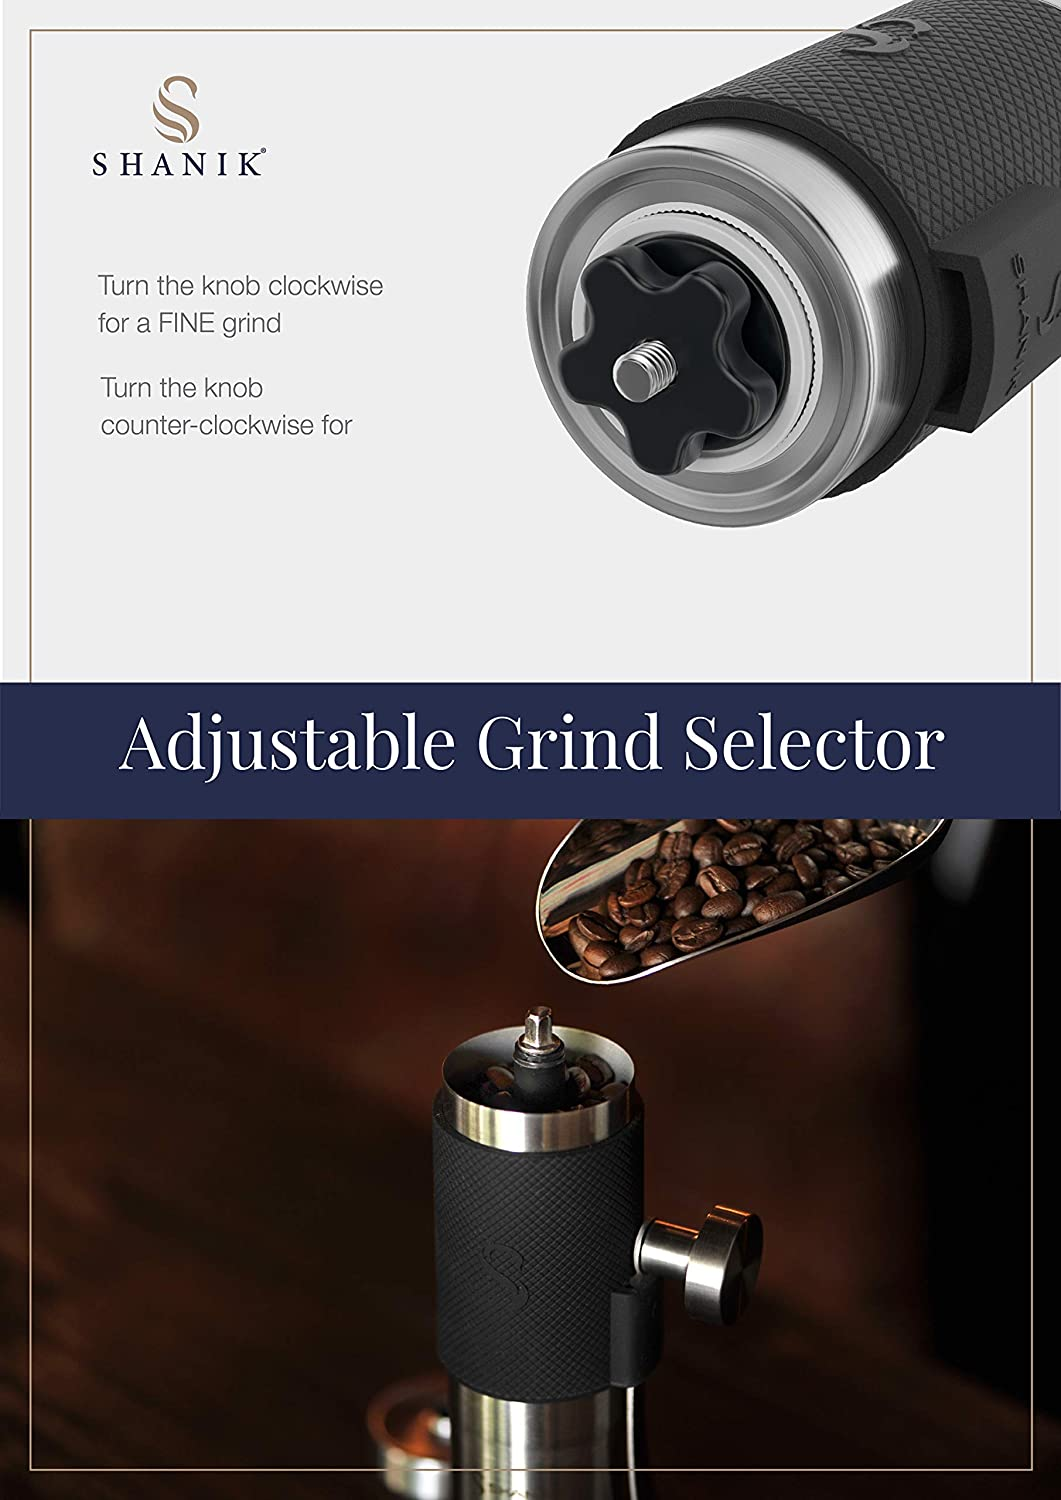 Premium Quality Stainless Steel Manual Coffee Grinder Portable Burr Coffee Grinder Conical Ceramic Burr for Precision Brewing Silicone Lid to Keep Coffee in Container Blue